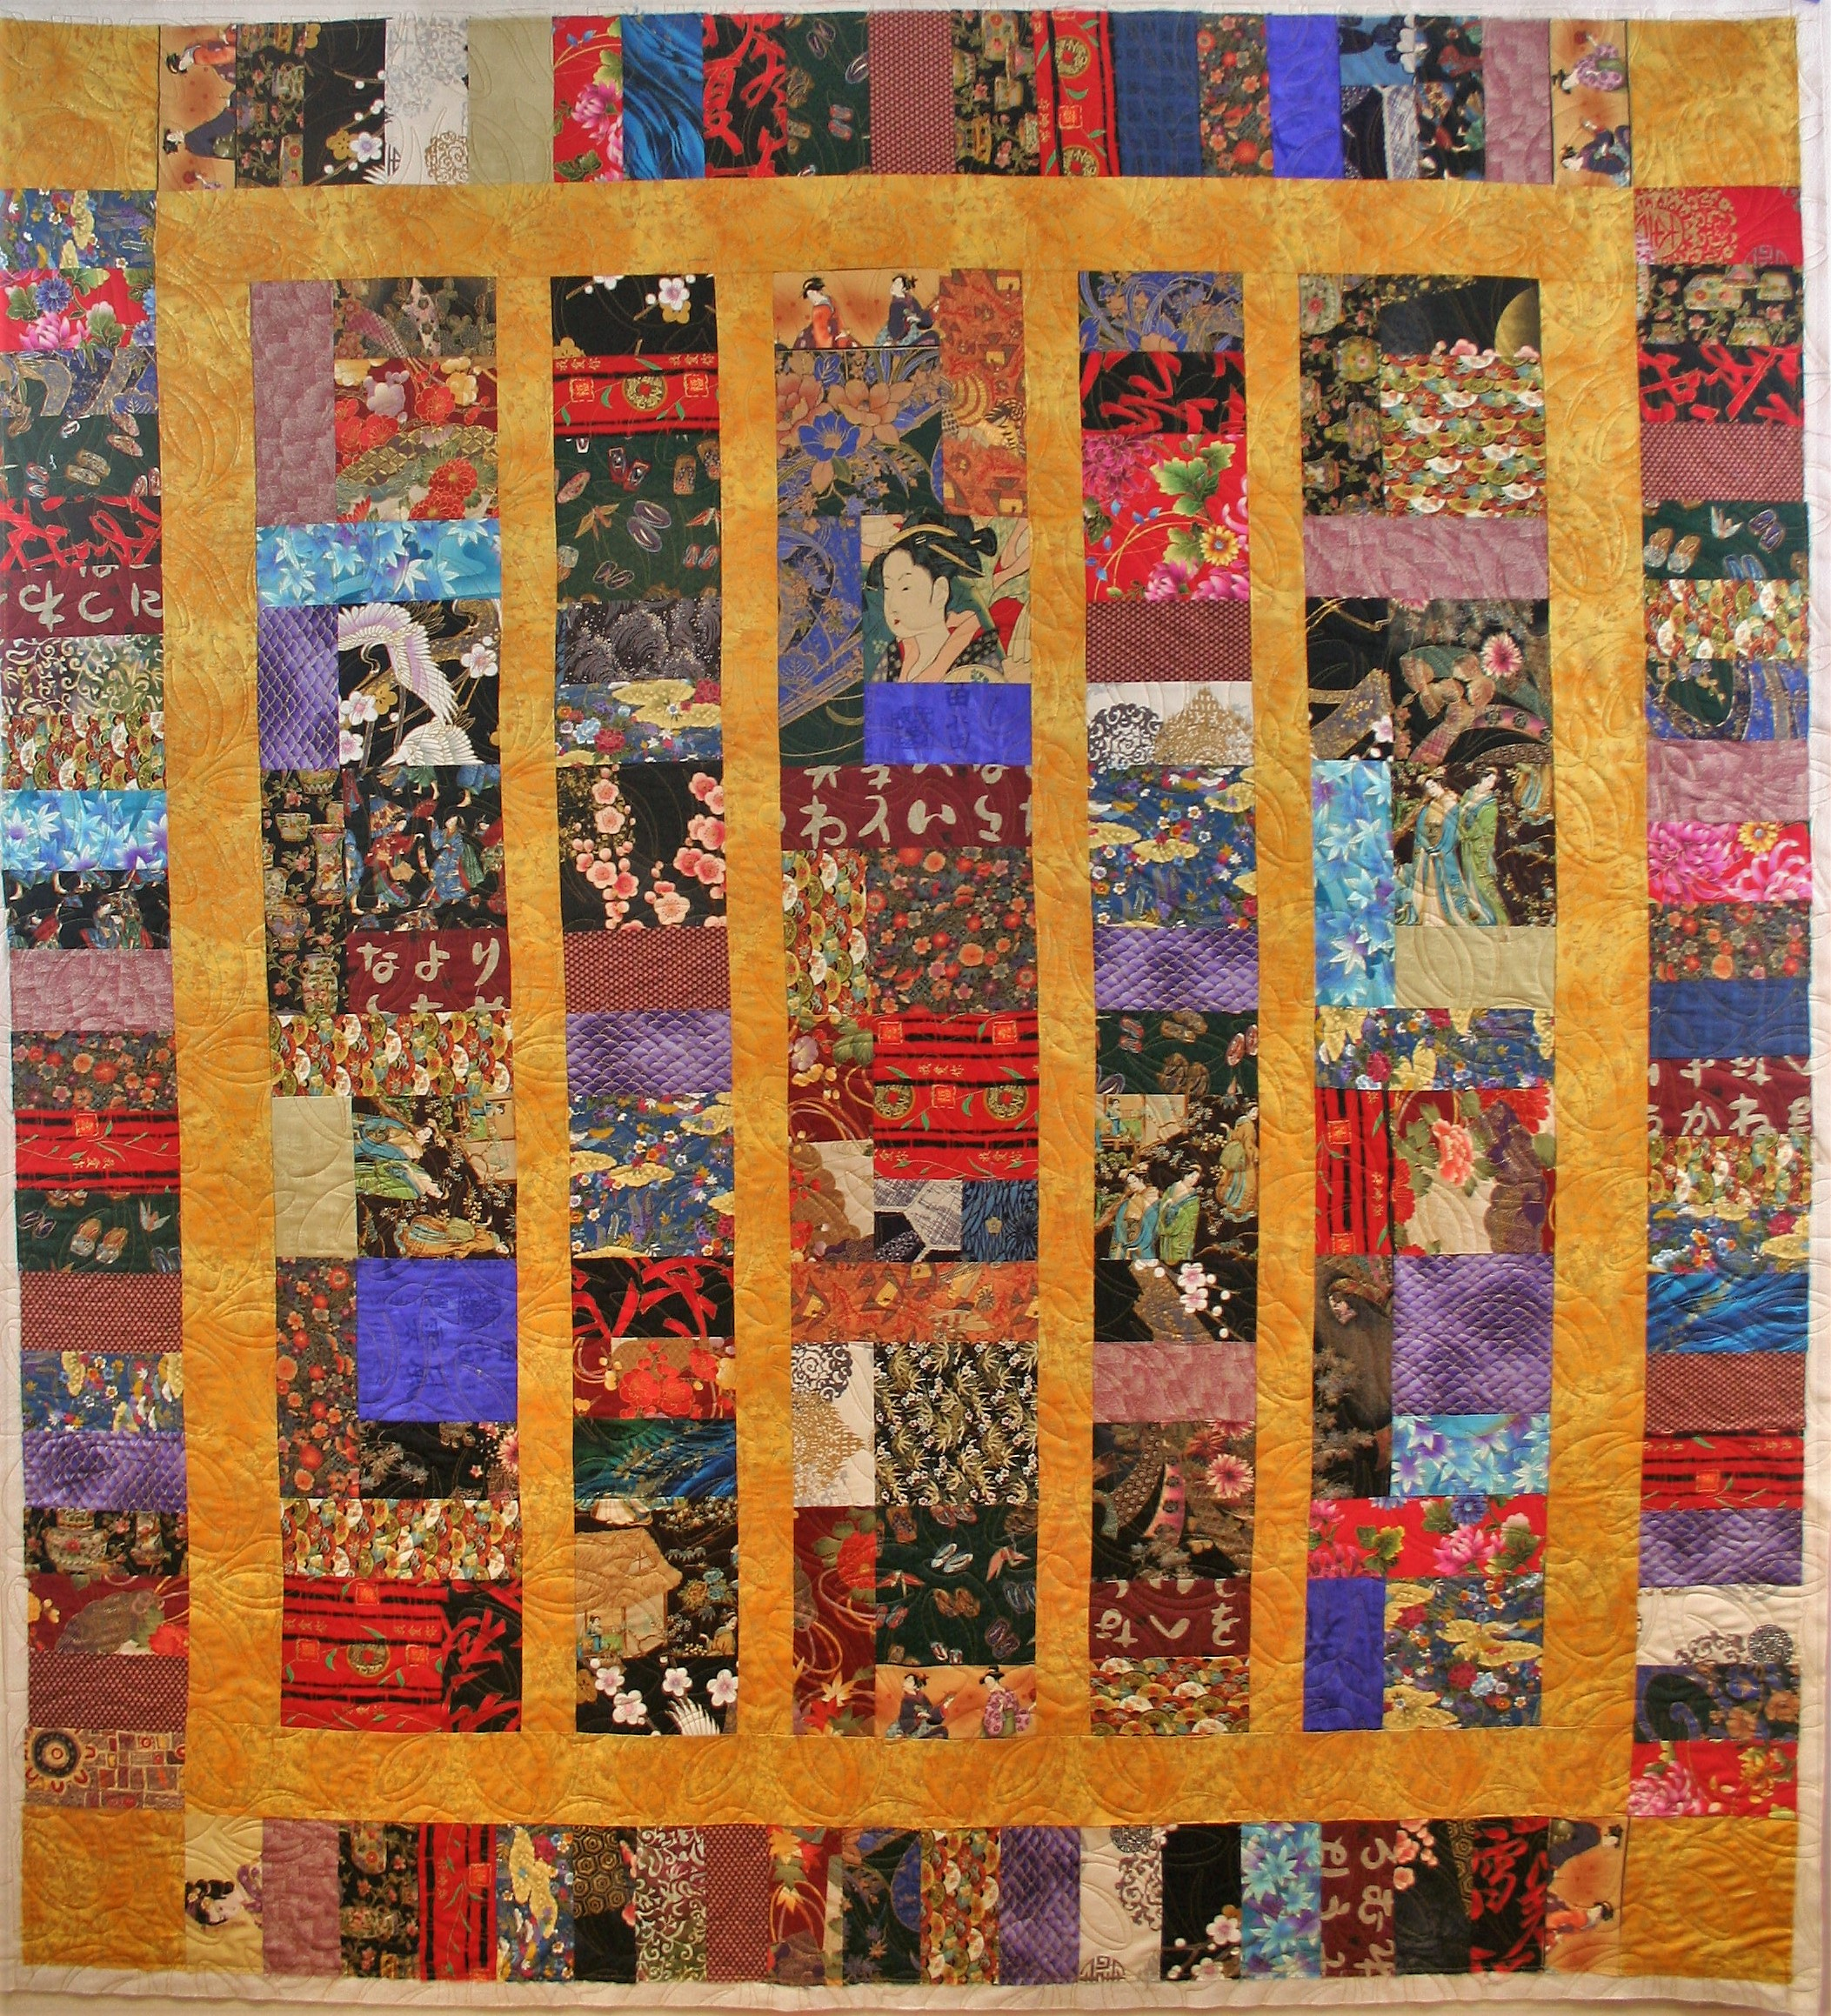 Japanese Quilt (front)